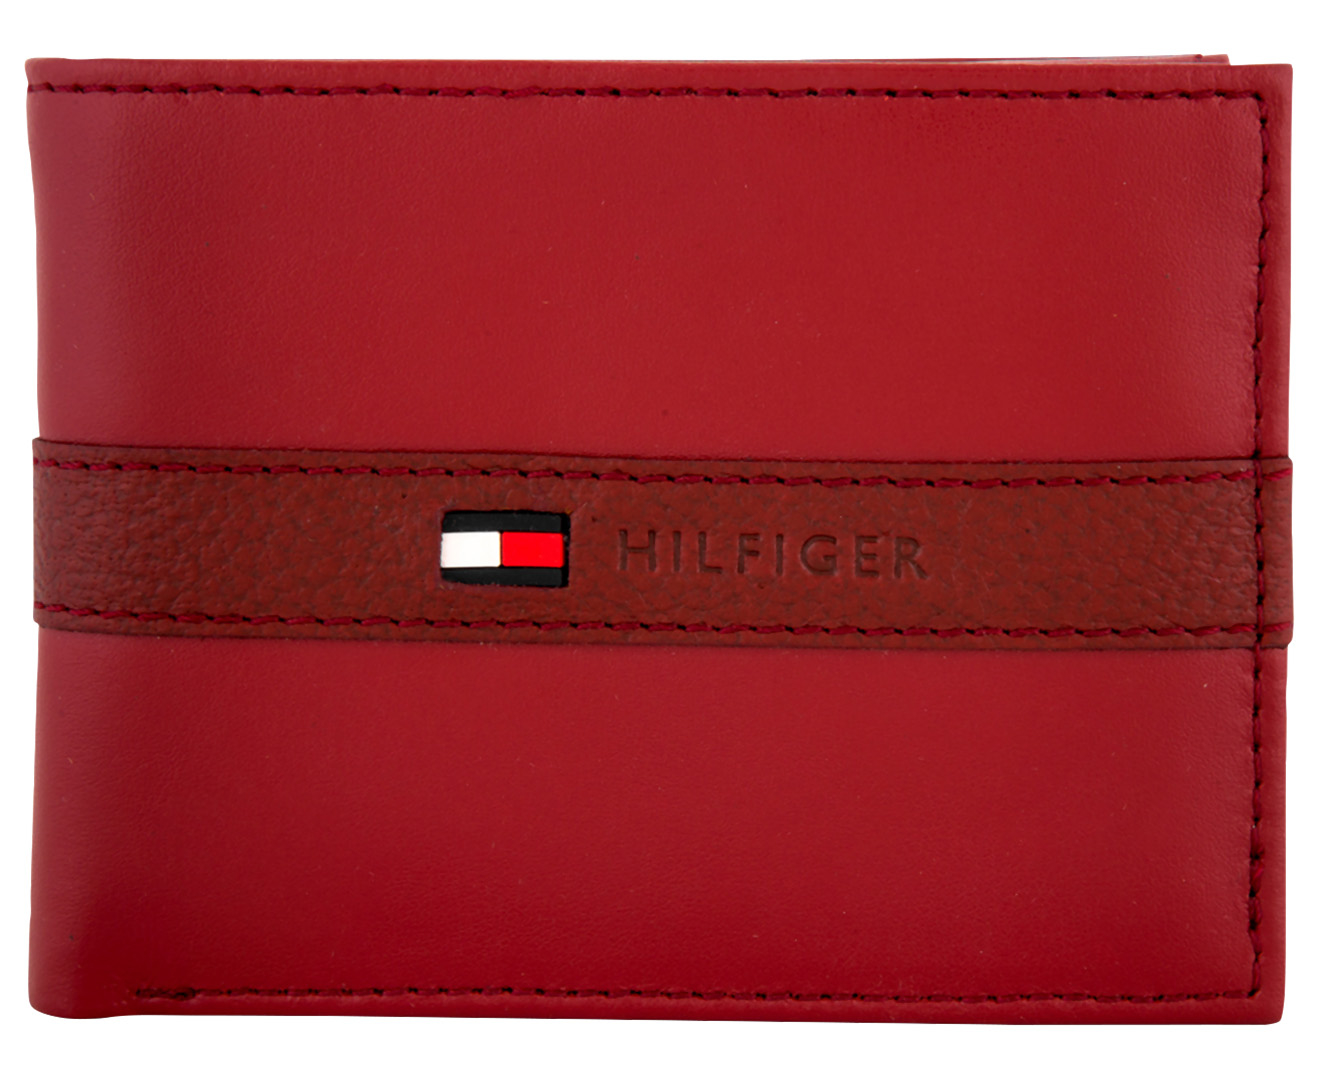 Tommy Hilfiger Men/'s Leather Ranger Passcase Wallet